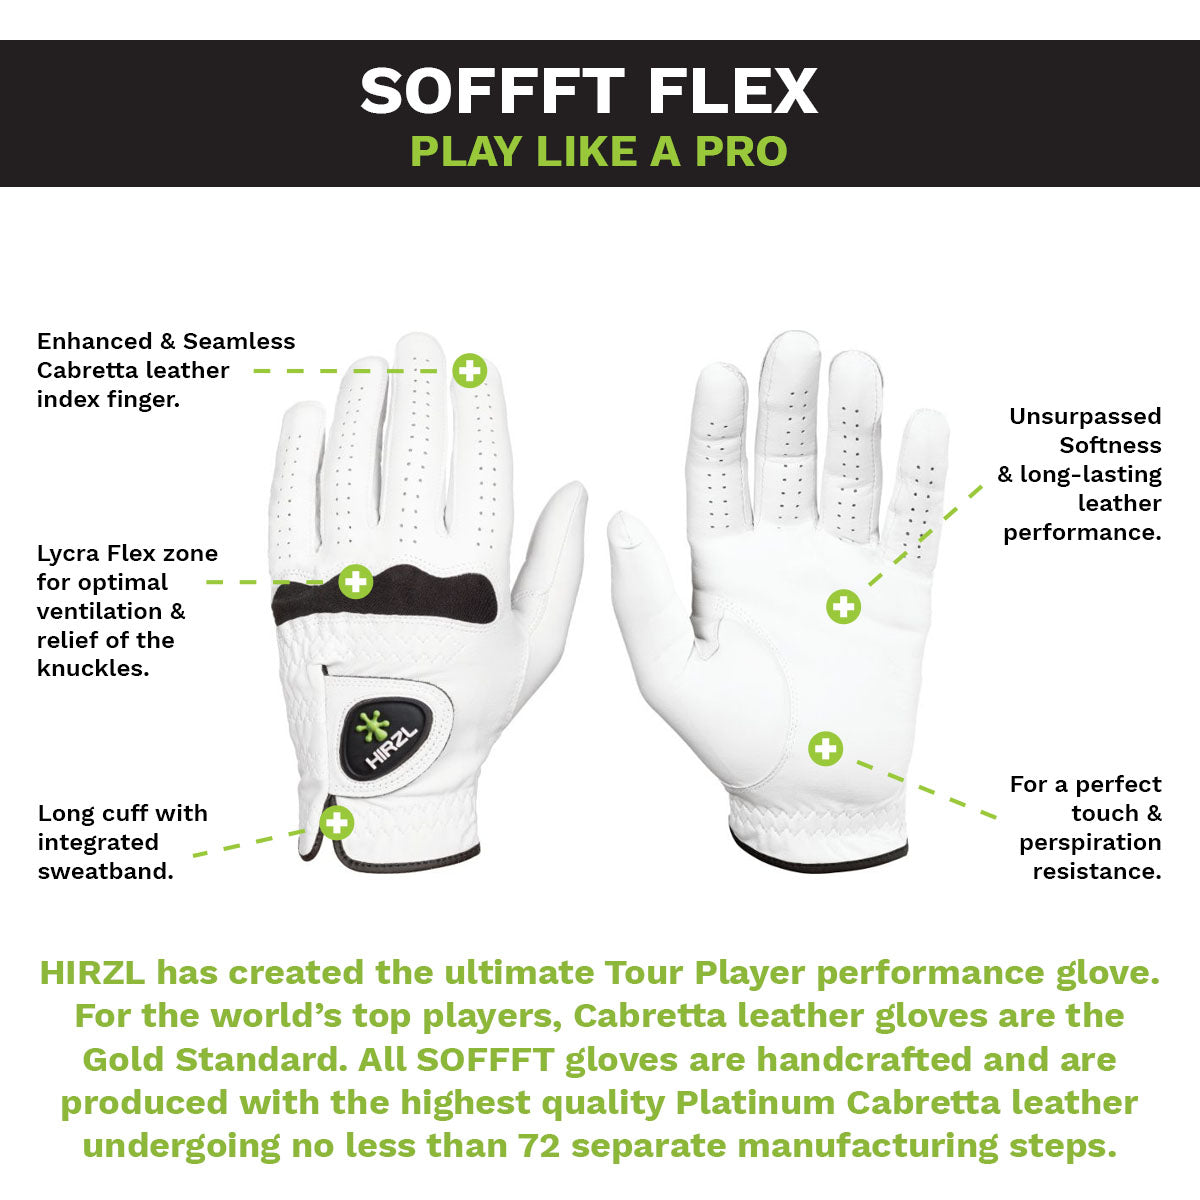 Hirzl Soffft Flex Gloves